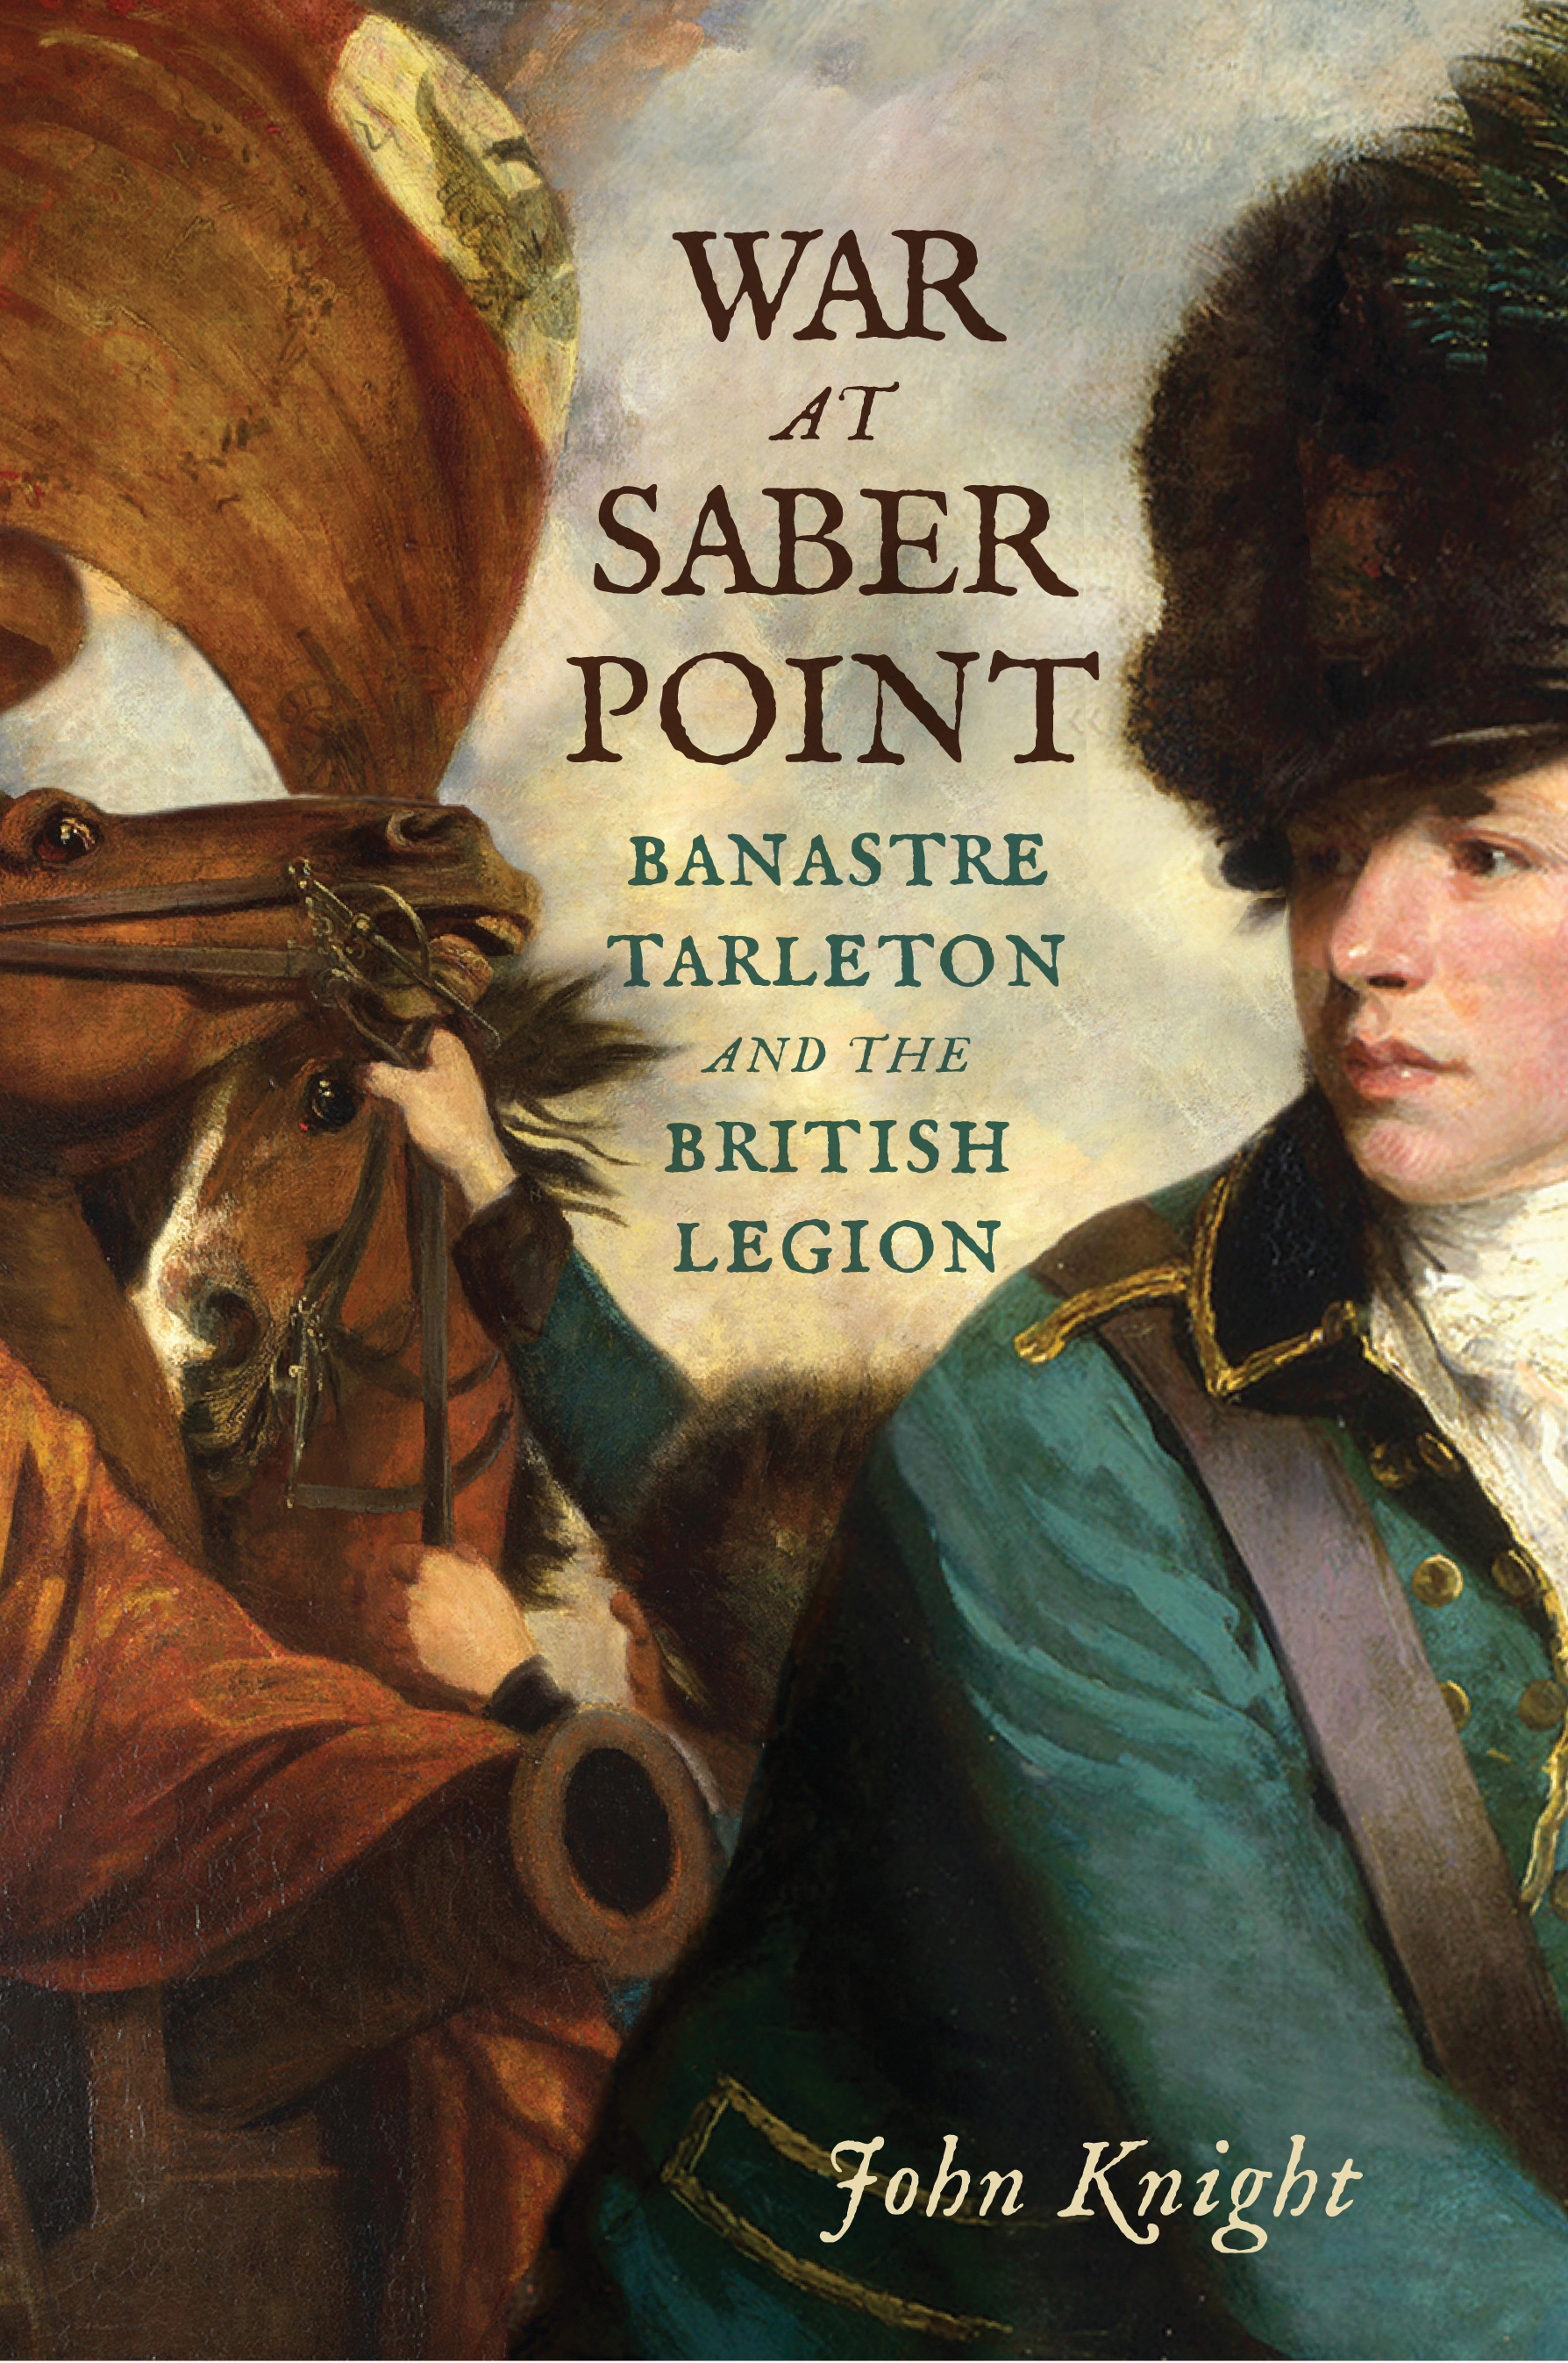 War at Saber Point: Banastre Tarleton and the British Legion